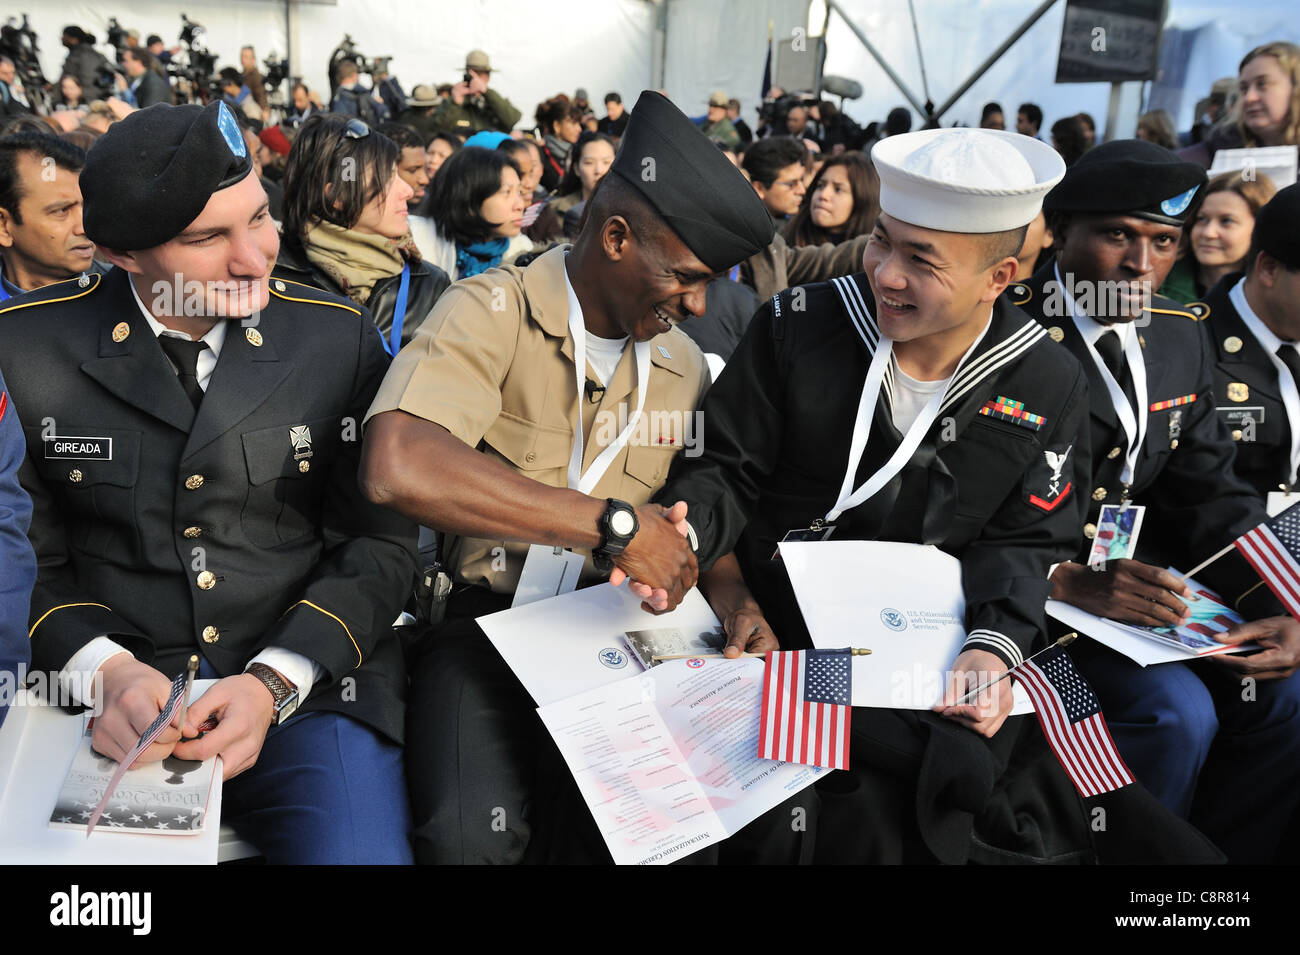 On Oct. 28, 2011, at a naturalization ceremony on Liberty Island, two of the new U.S. citizens congratulated each - Stock Image